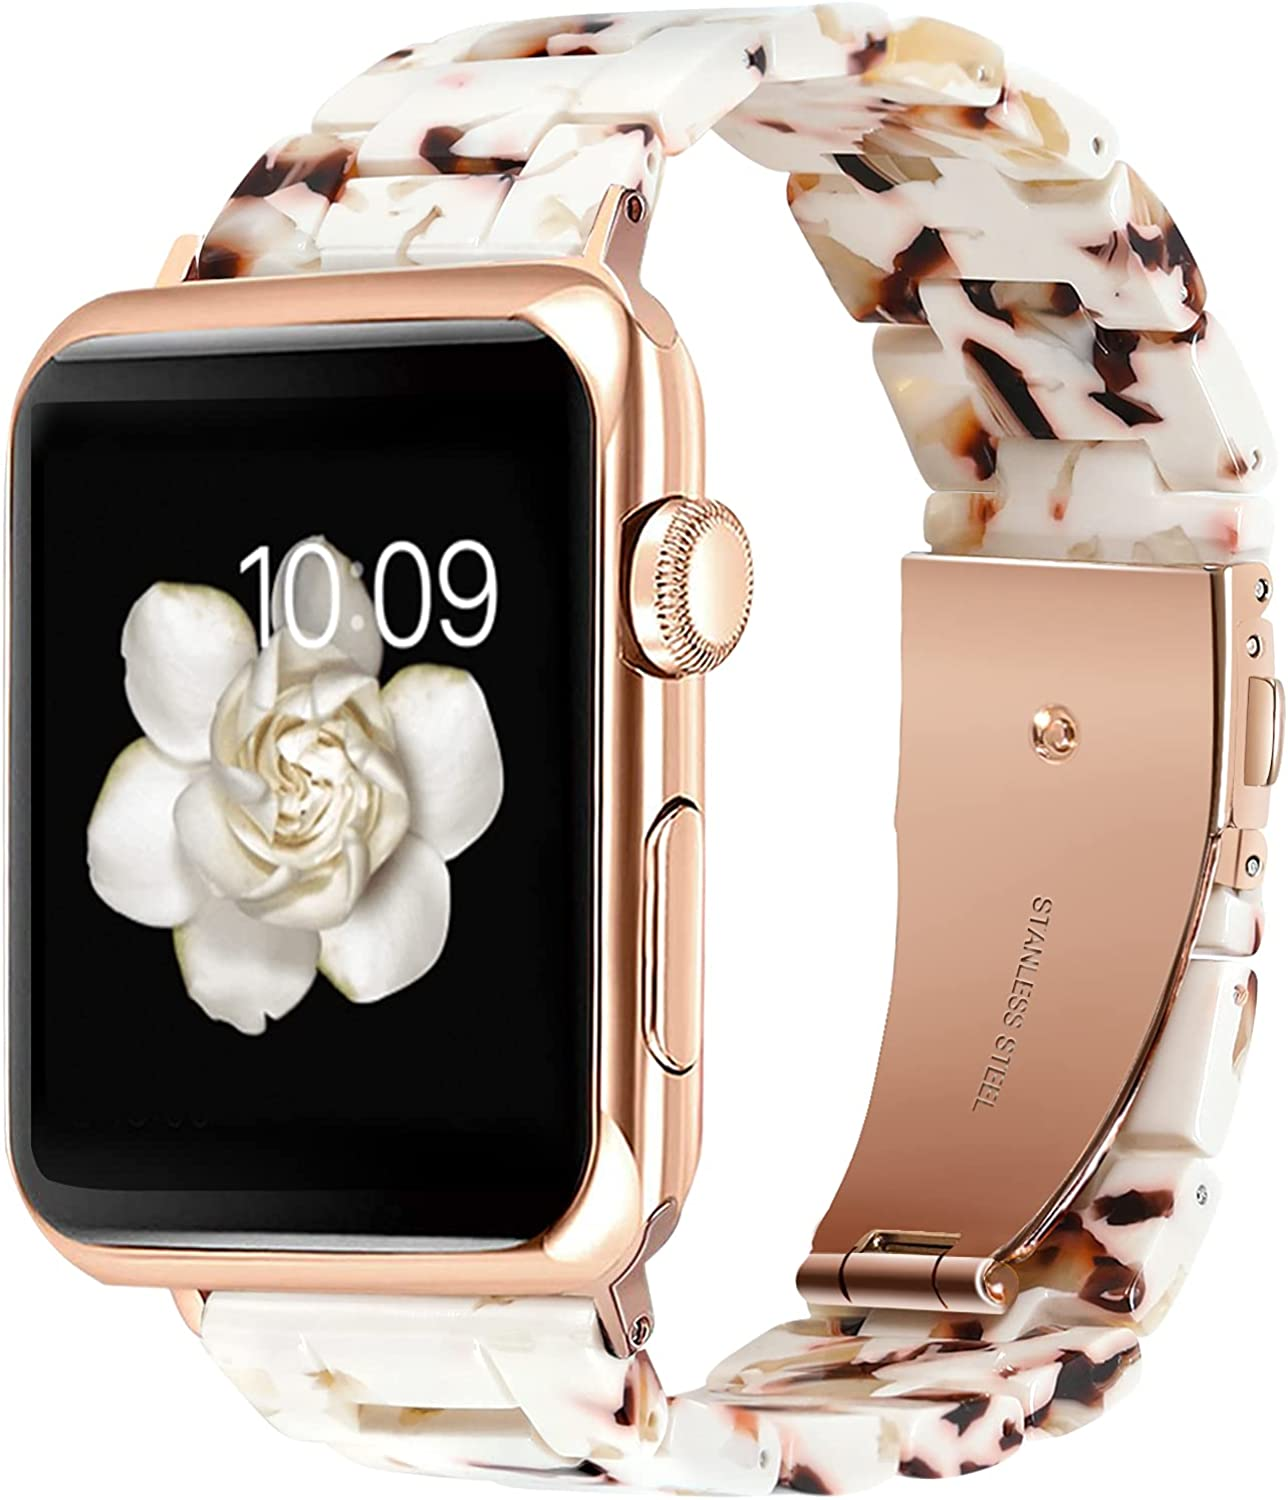 AiSwag Compatible with Apple Watch Bands 38mm 40mm 42mm 44mm Fancy Resin Watch Bands Replacement for iwatch Series 6 5 4 3 2 1 SE for Men Women